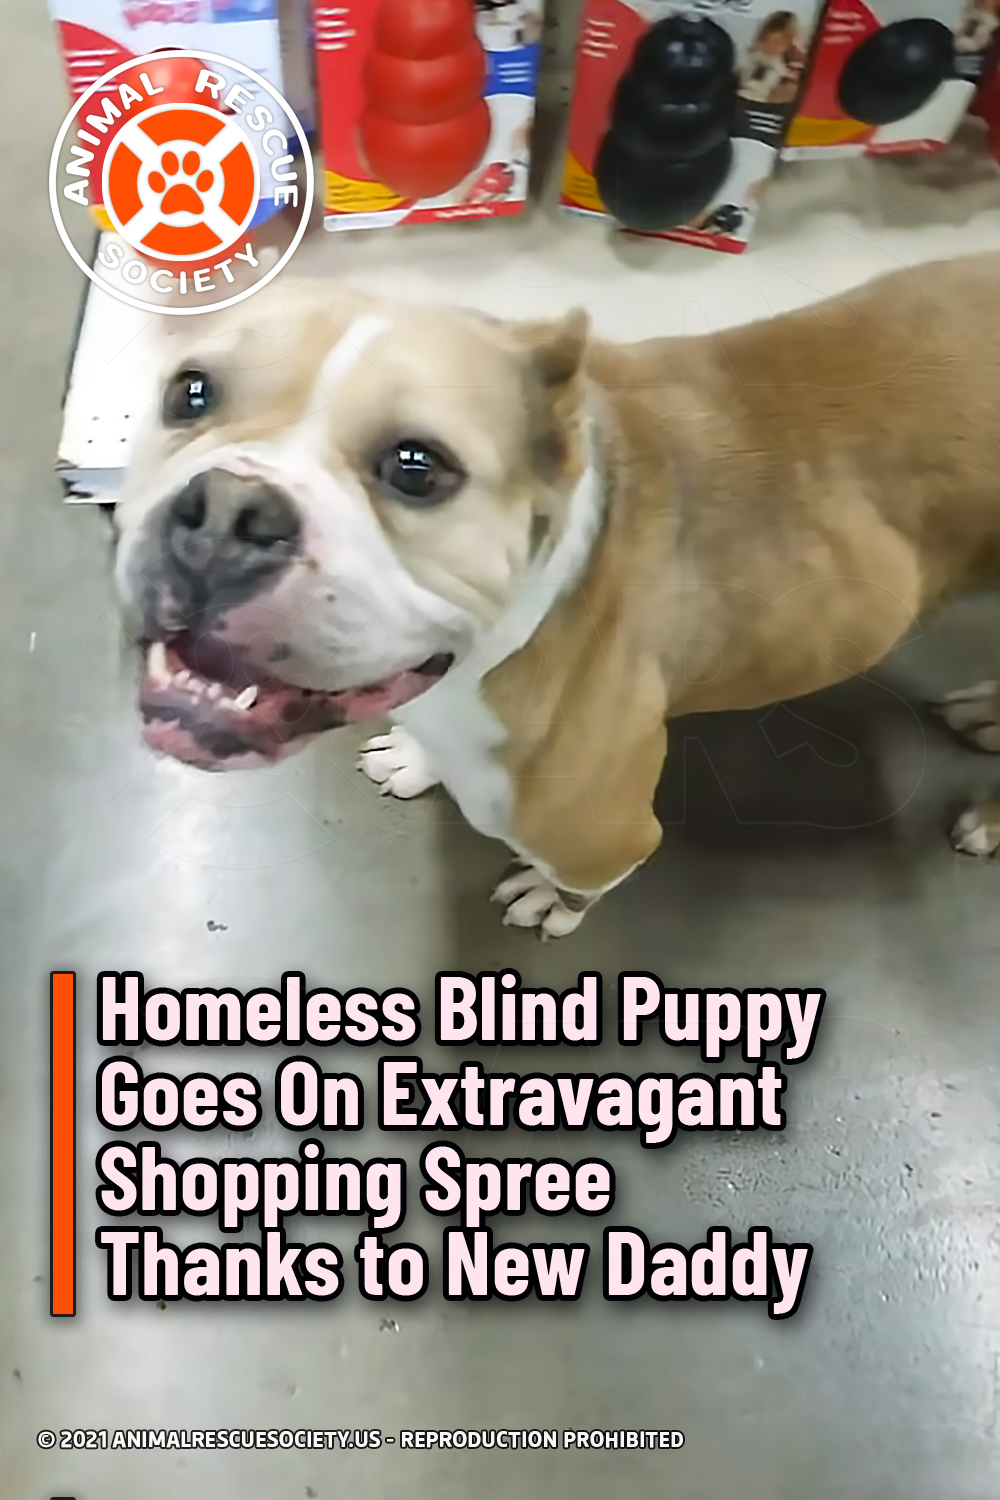 Homeless Blind Puppy Goes On Extravagant Shopping Spree Thanks to New Daddy